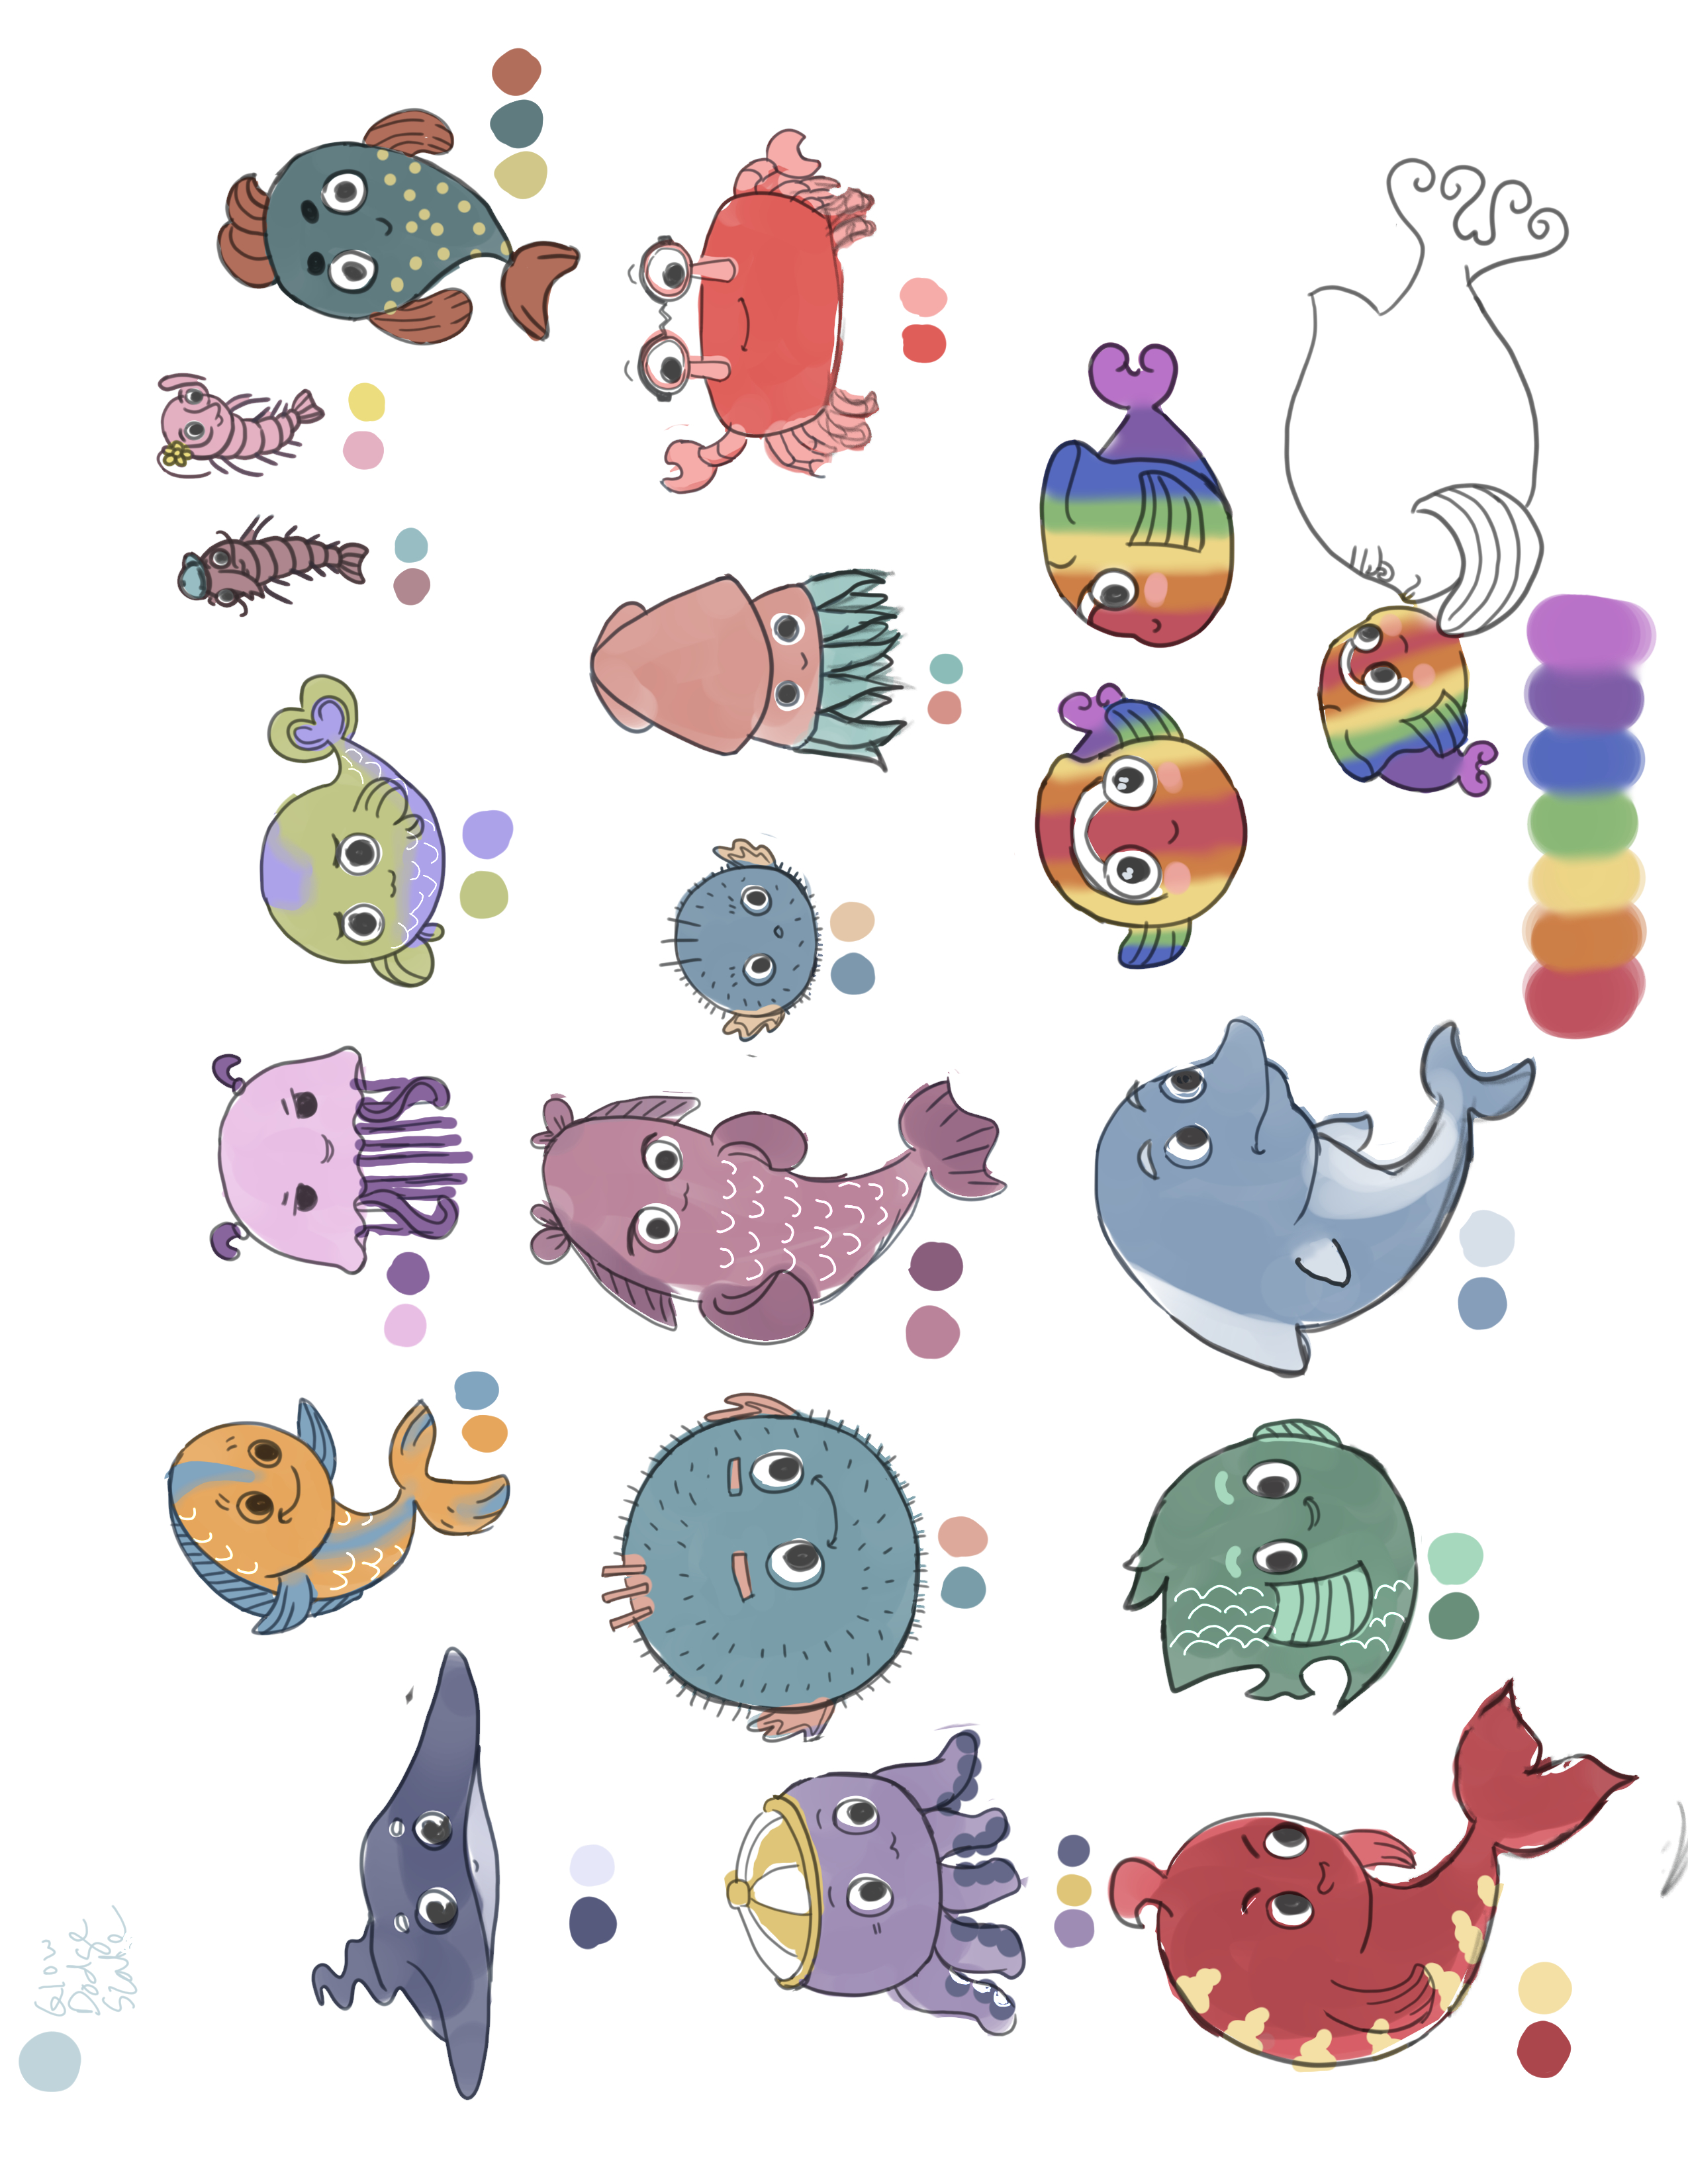 character designs for children's book